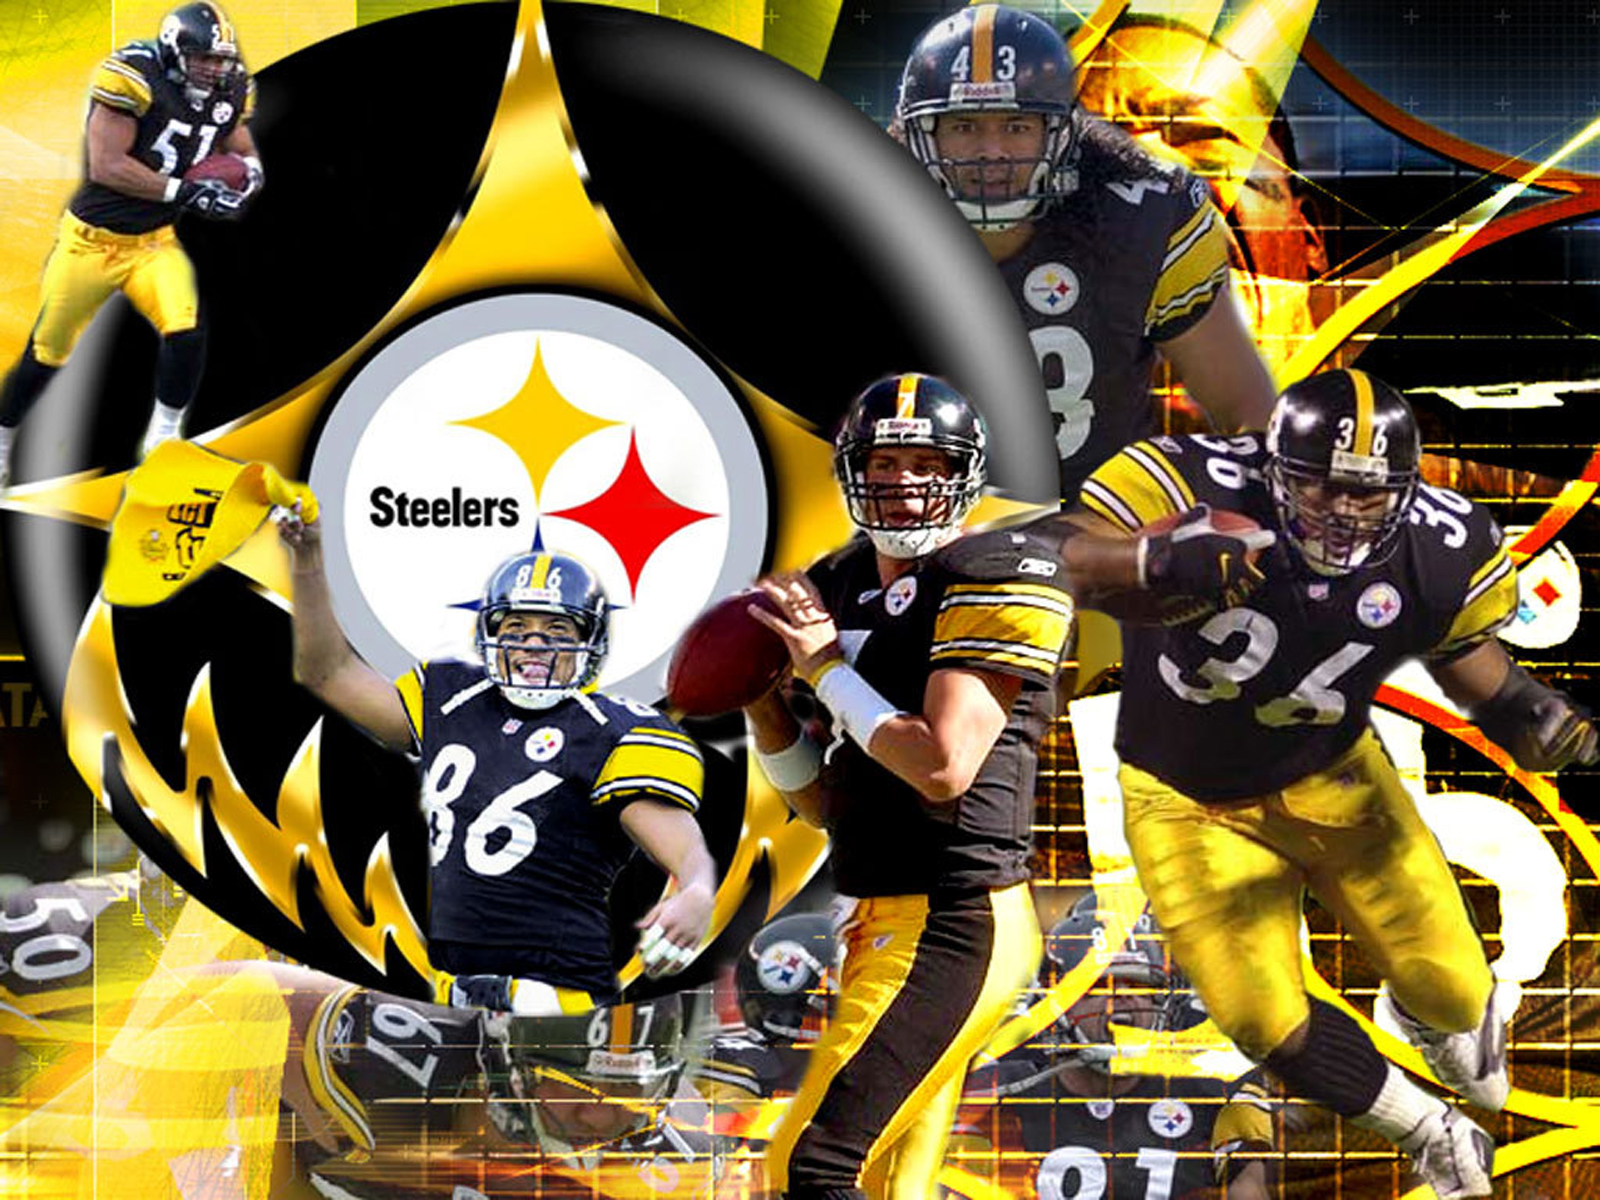 Pittsburgh Steelers Pro Shop The official merchandise shop of the Pittsburgh Steelers Shop for Steelers Jerseys sideline looks and apparel